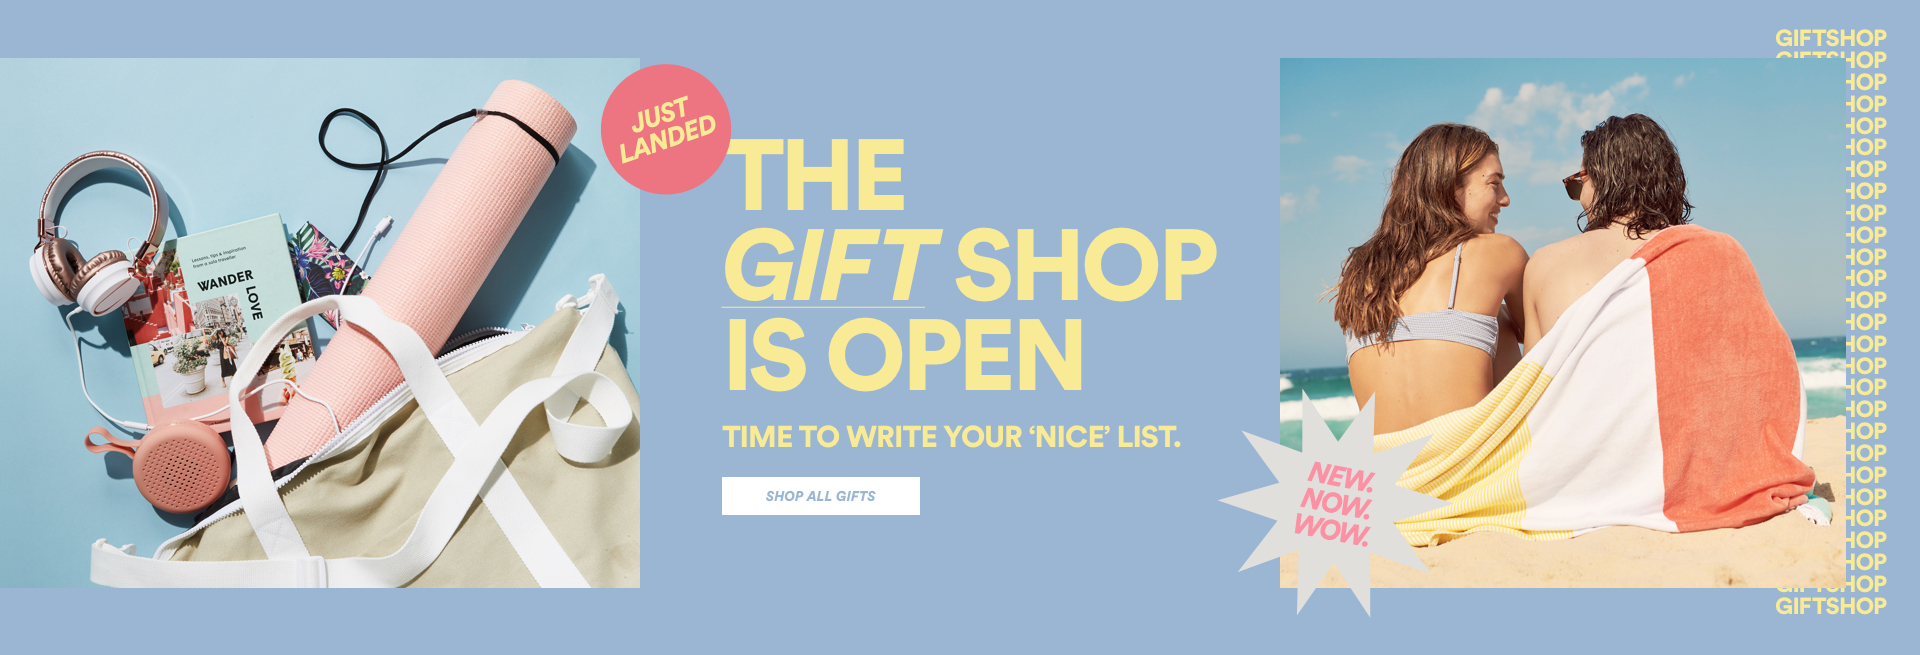 The gift shop is open. Click to Shop.